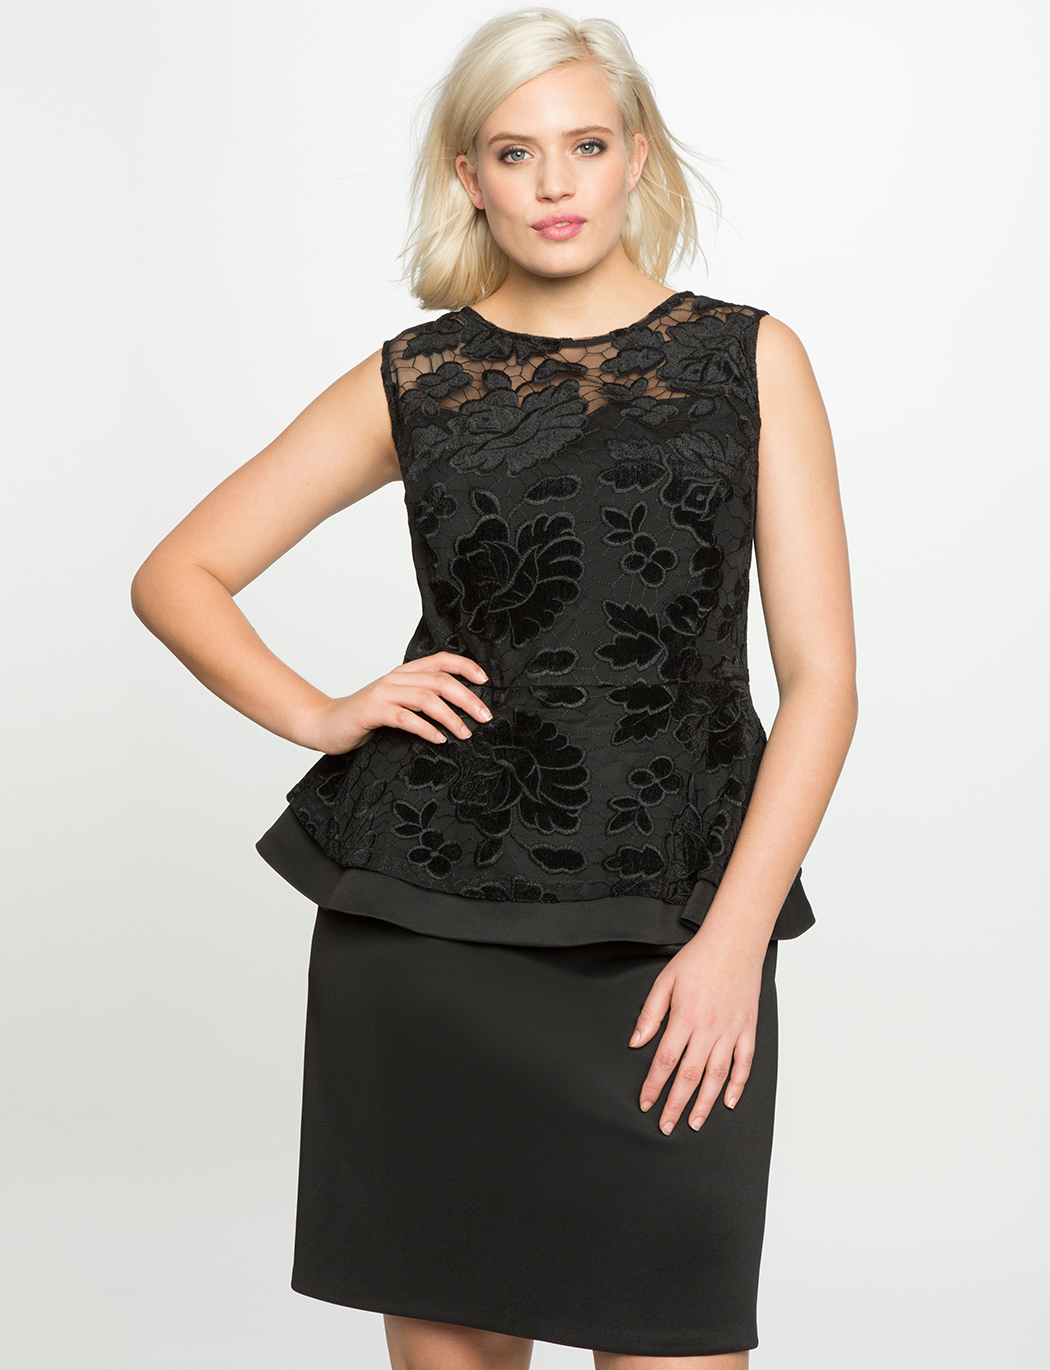 Embroidered Peplum Dress